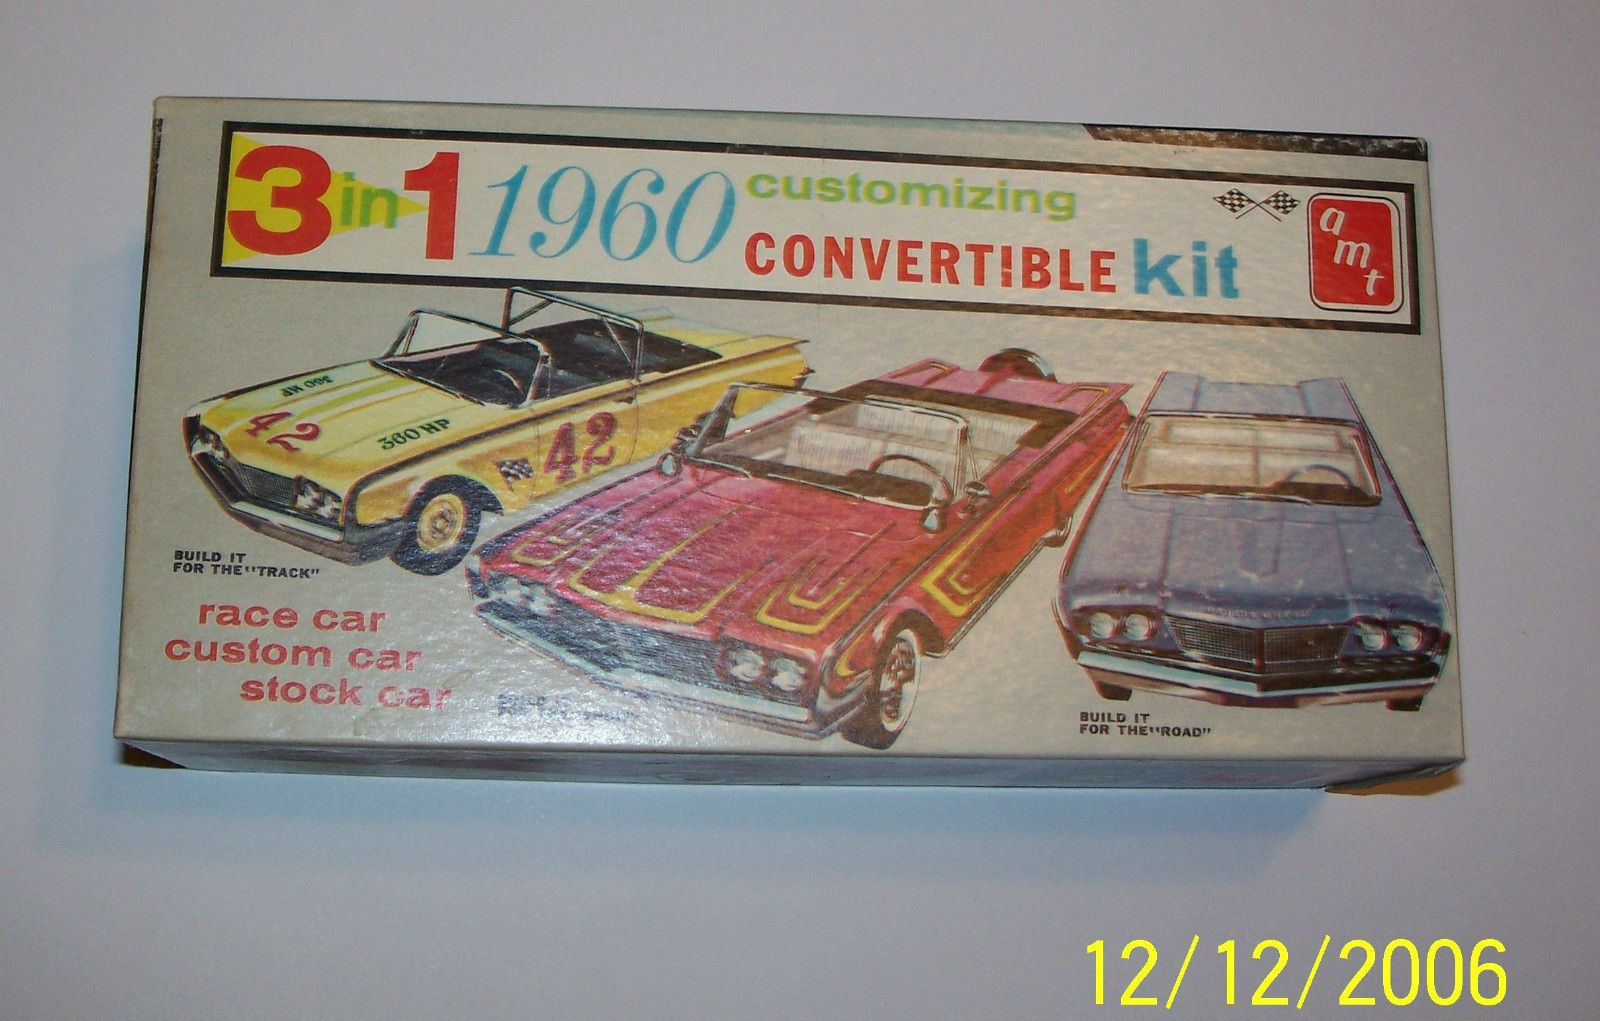 Amt 1960 Ford Edsel Ranger Convertible 3 In 1 Model Car Kit The Rendering On Outside Of Box Looks Nothing Like Actual Though